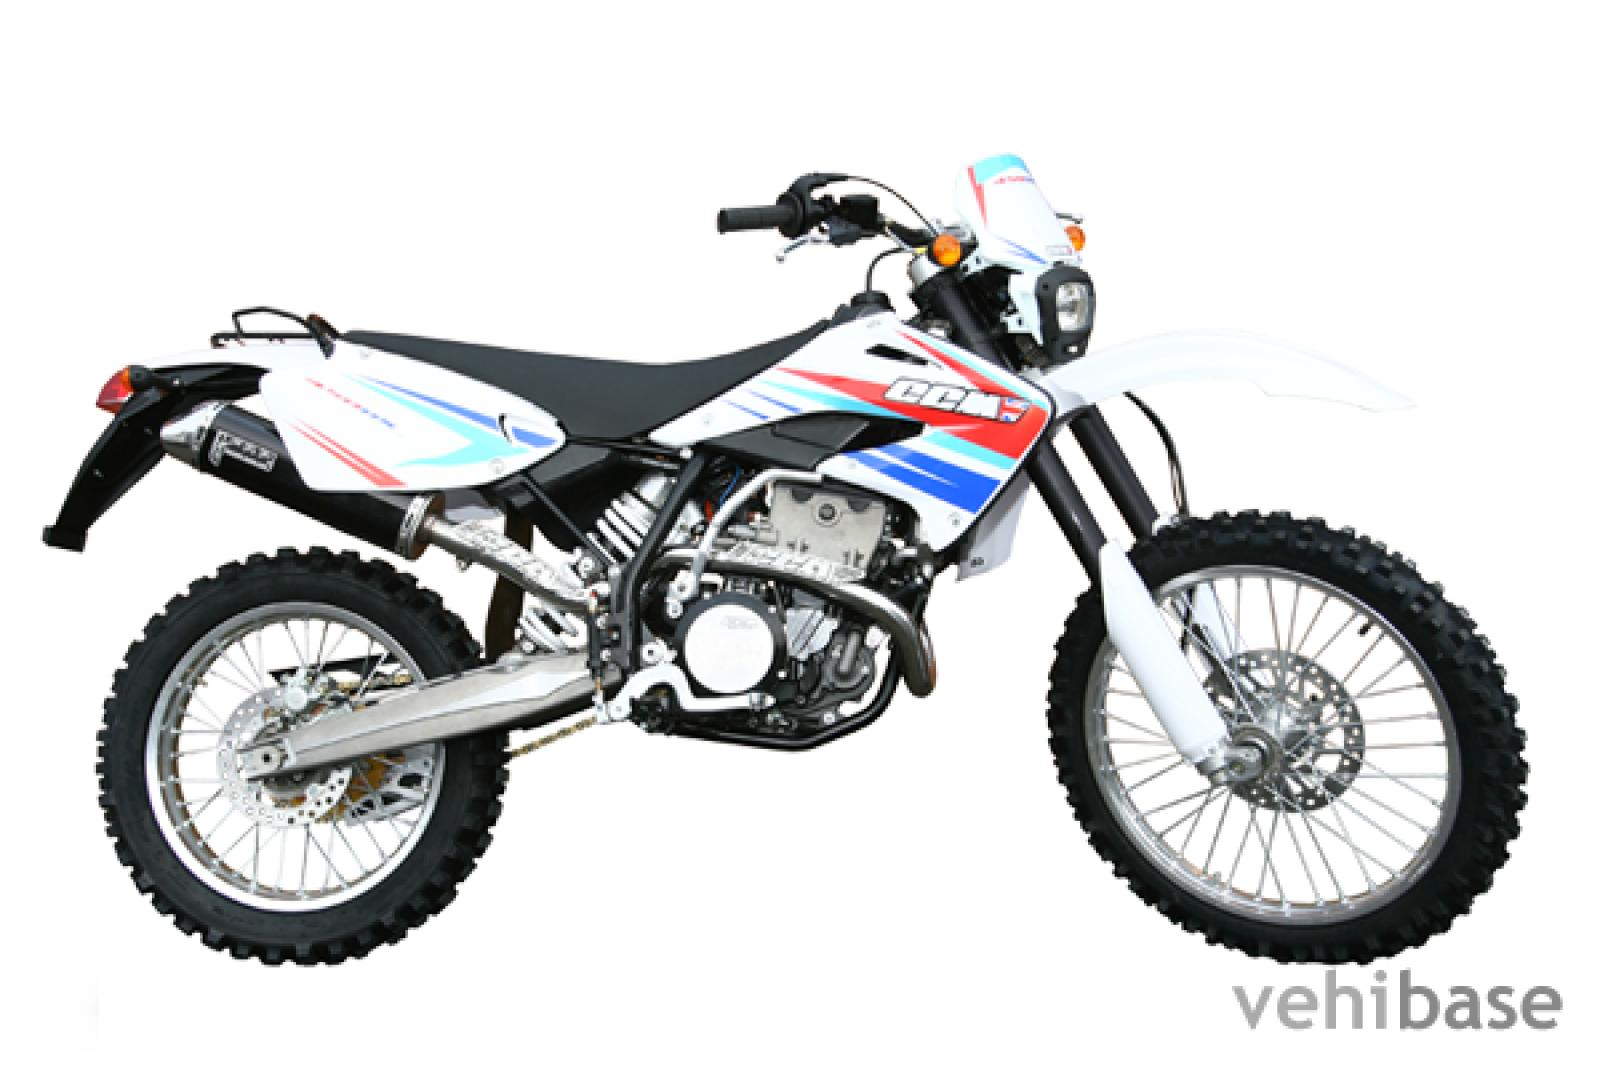 2007 ccm 404ds dualsport moto  pics  specs and information